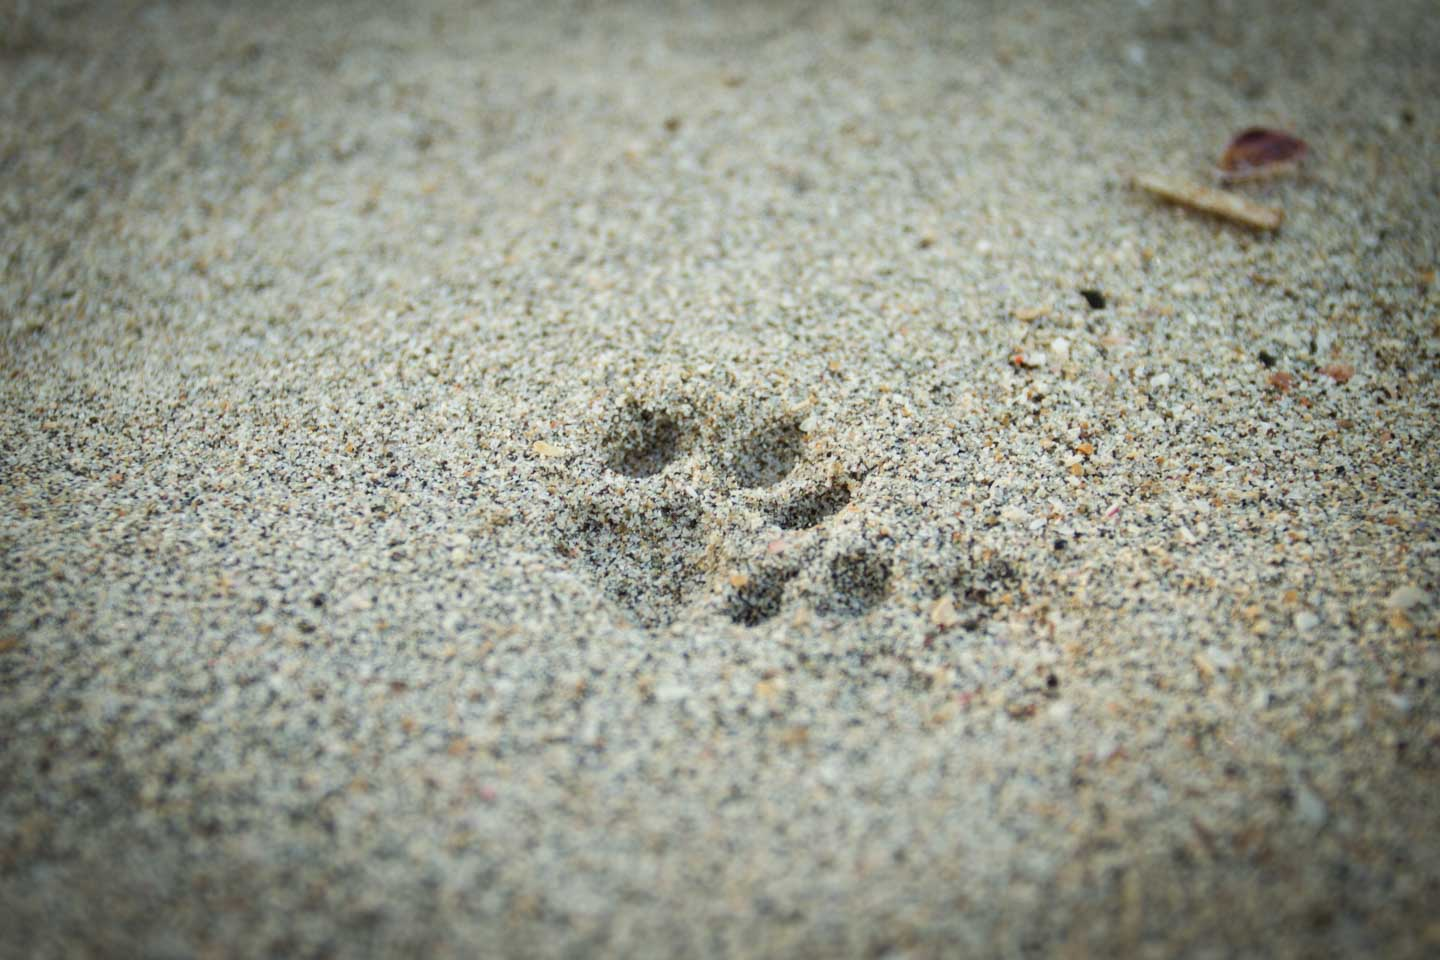 Puma print footprint in sand beach at Nusa Kambangan Java Indonesia